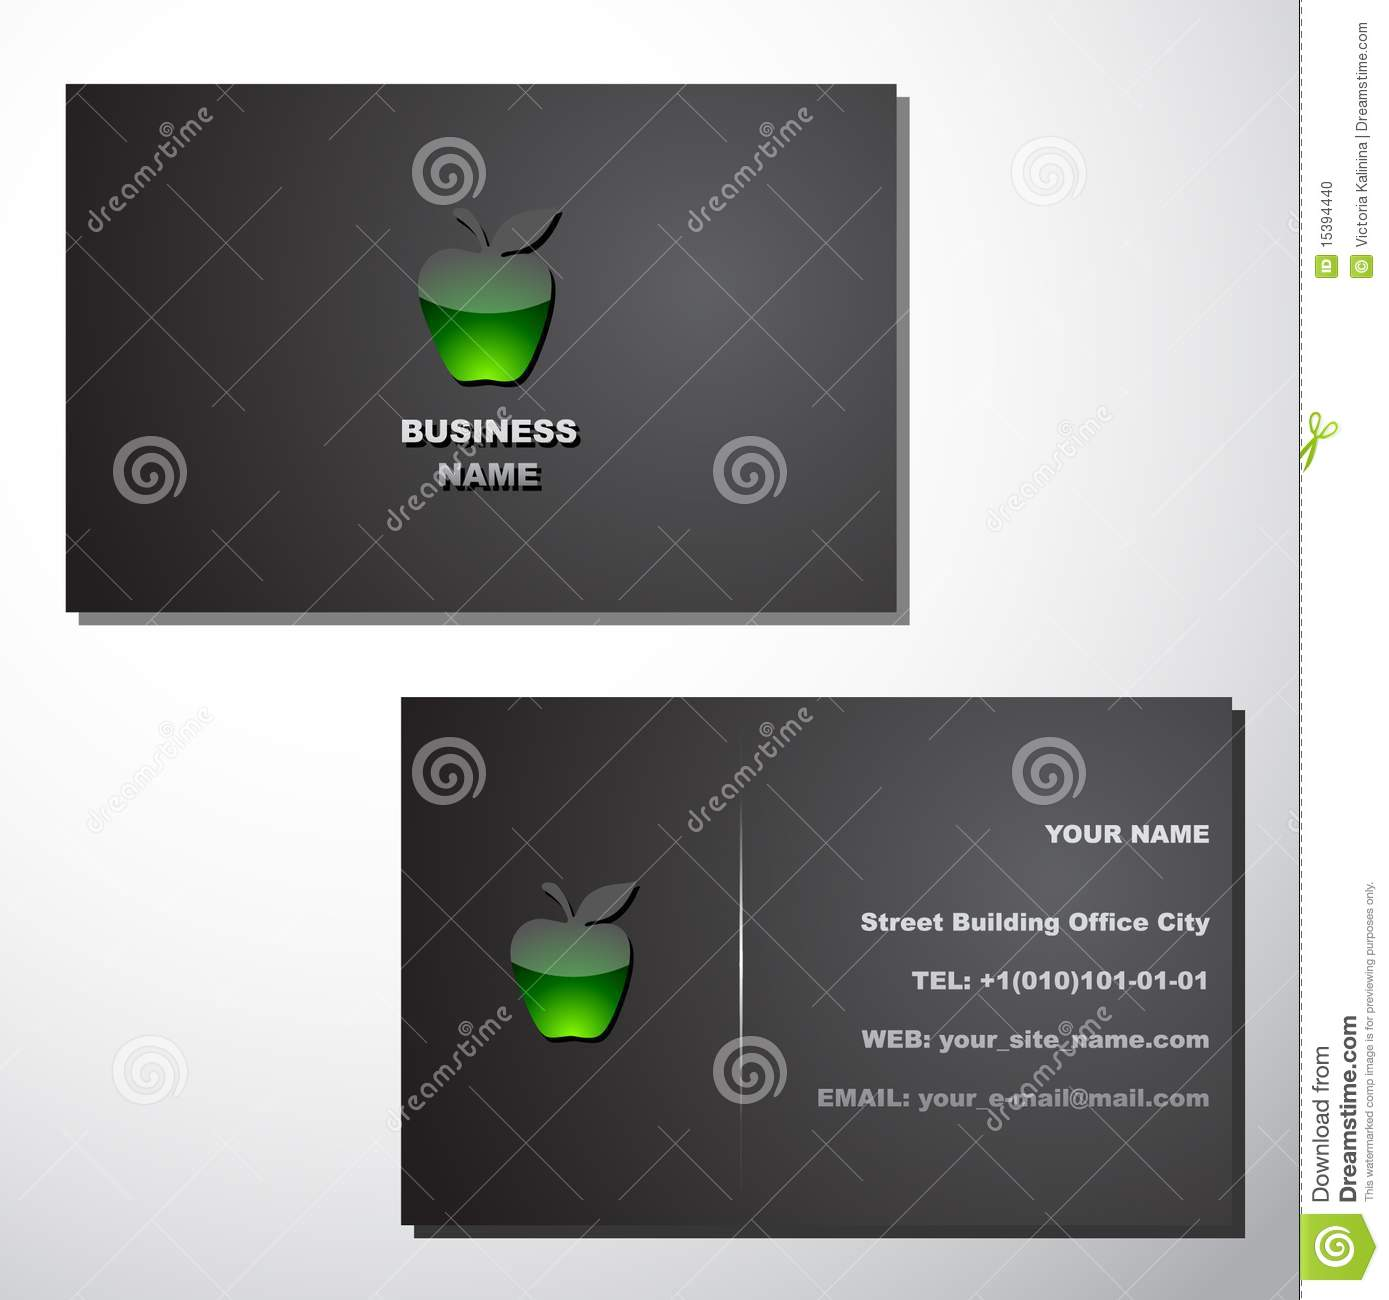 business card template mac - Military.bralicious.co